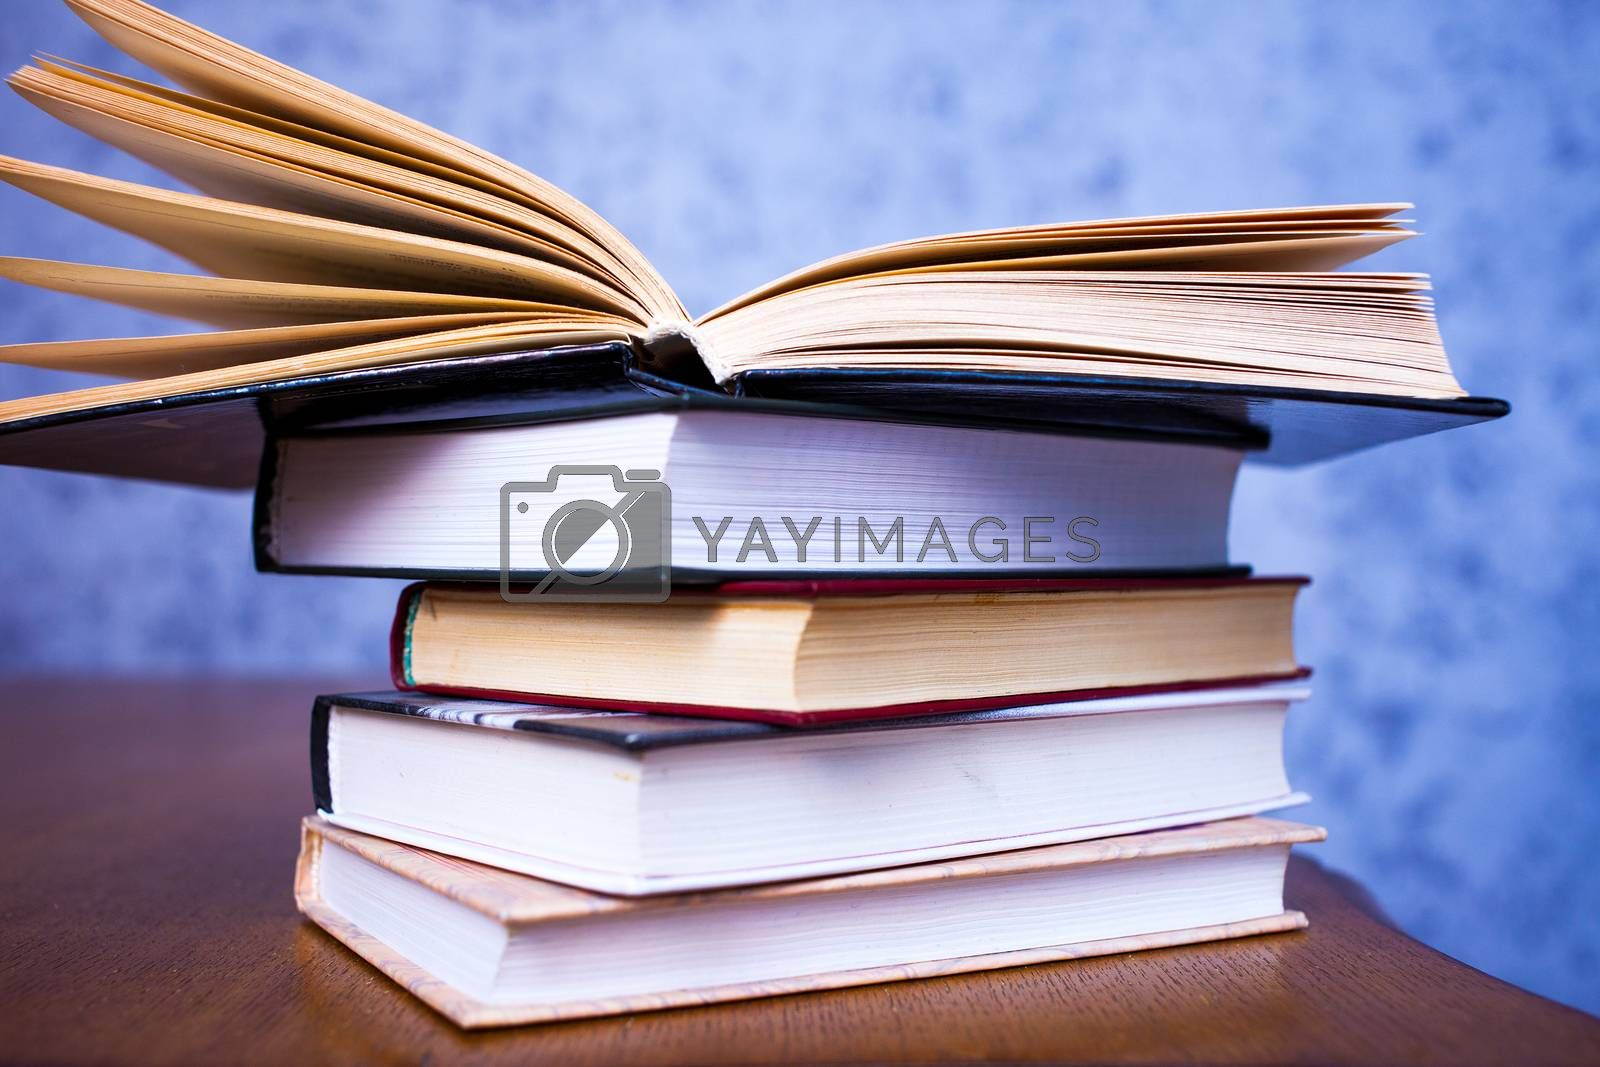 Royalty free image of Vintage books by Astroid